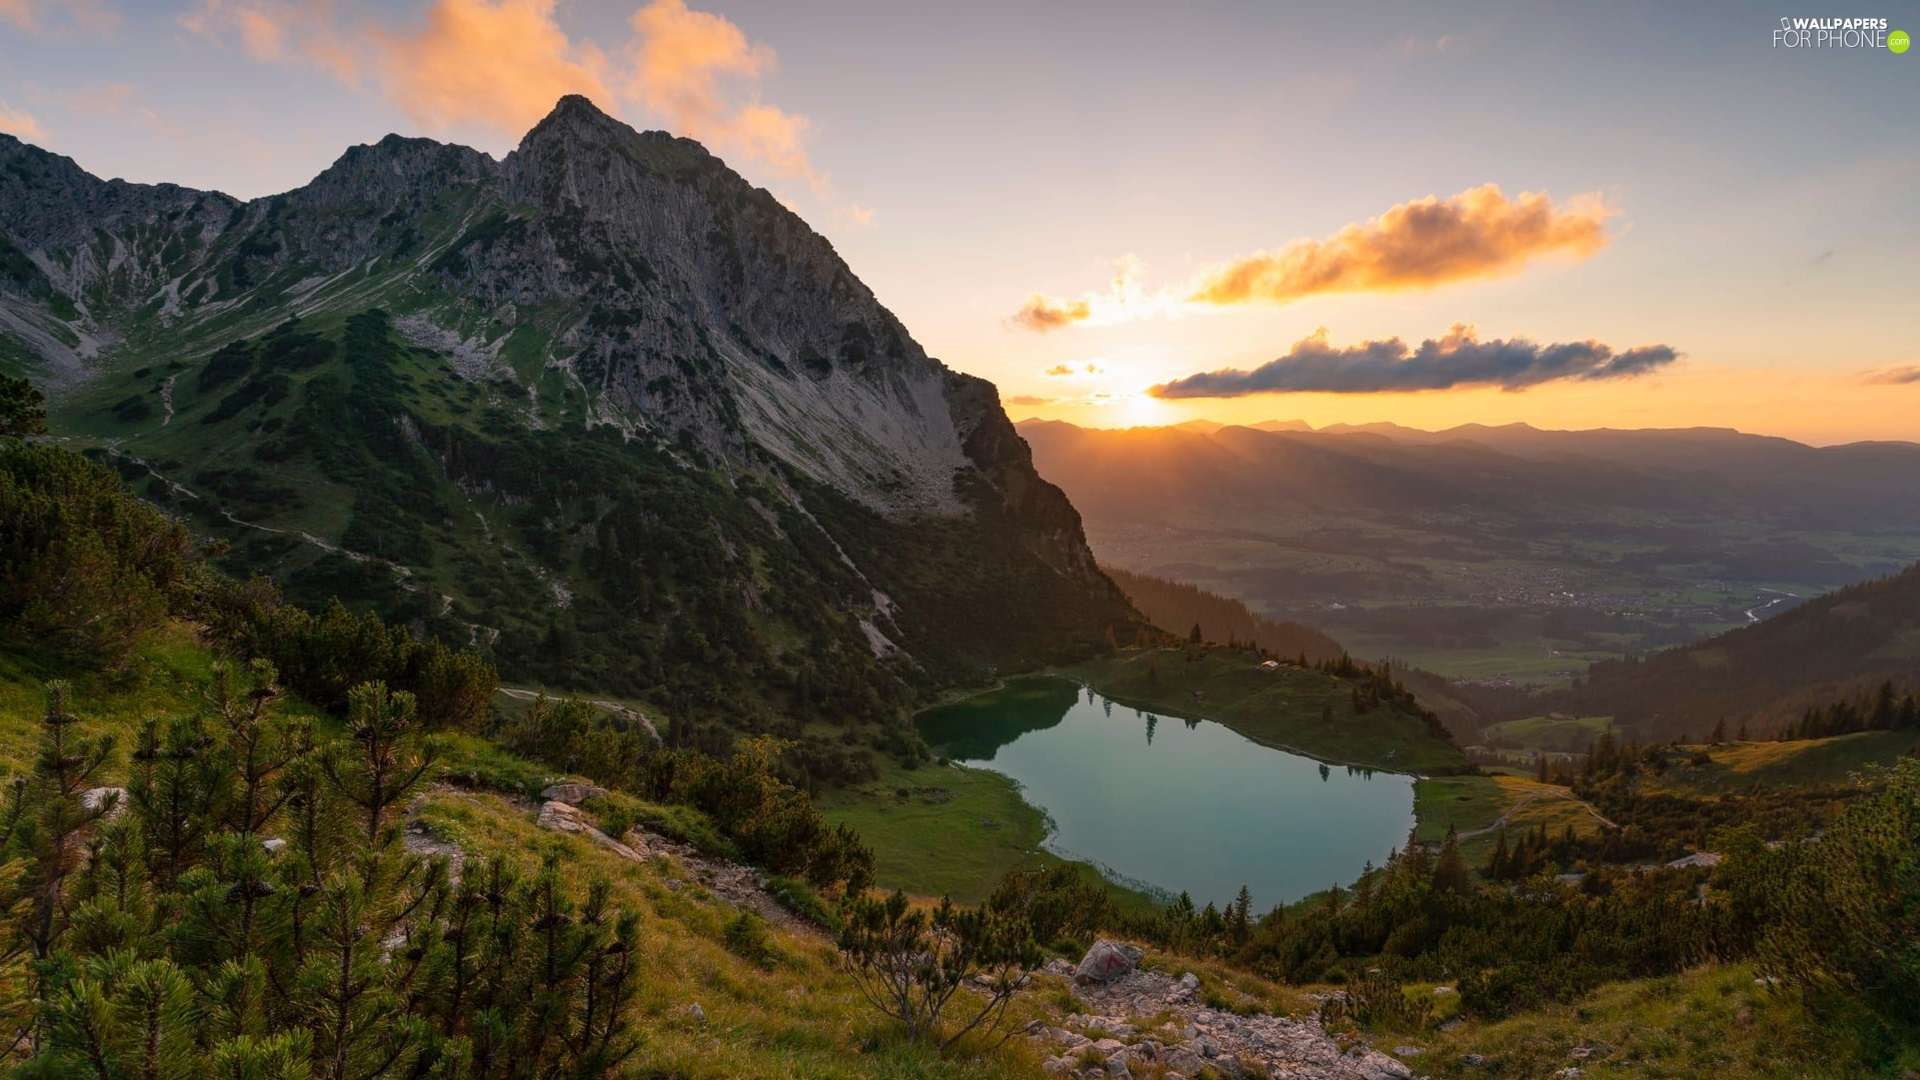 trees, Mountains, Sunrise, clouds, viewes, lake